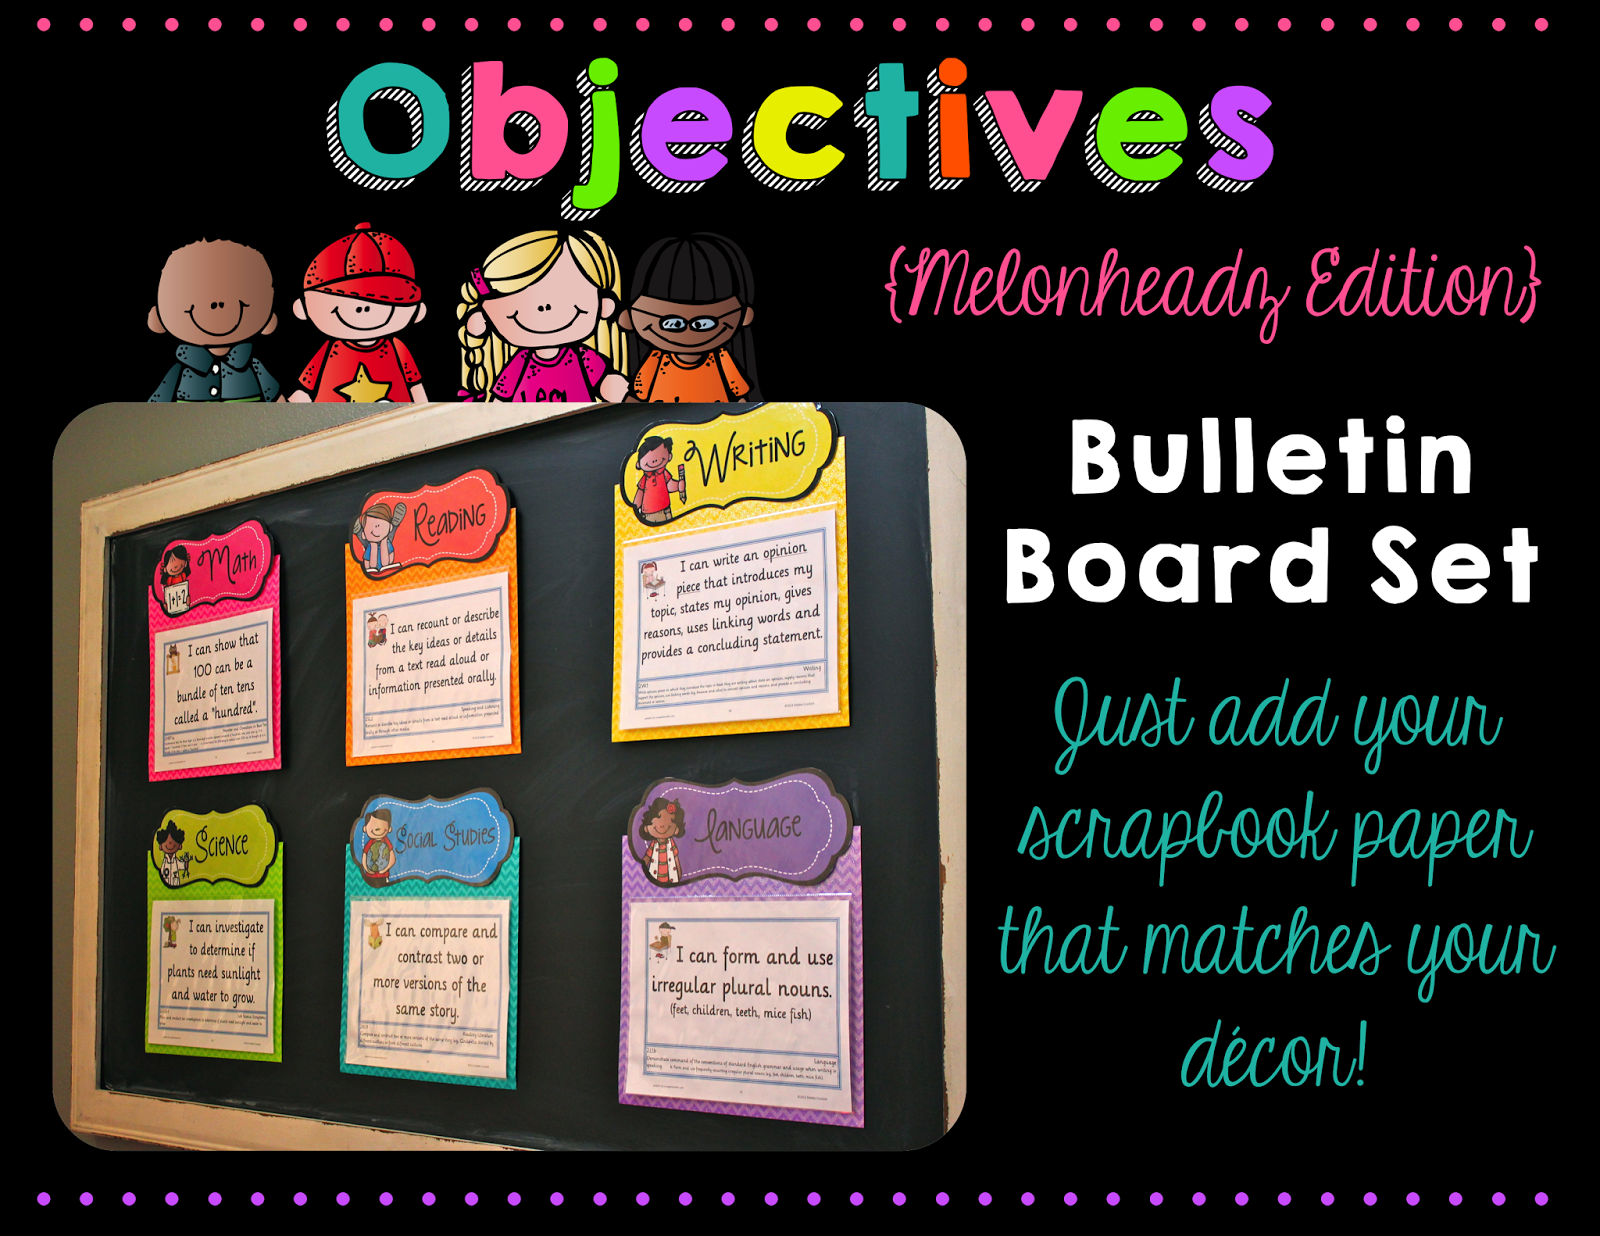 http://www.teacherspayteachers.com/Product/Objectives-Bulletin-Board-Melonheadz-Edition-1309582